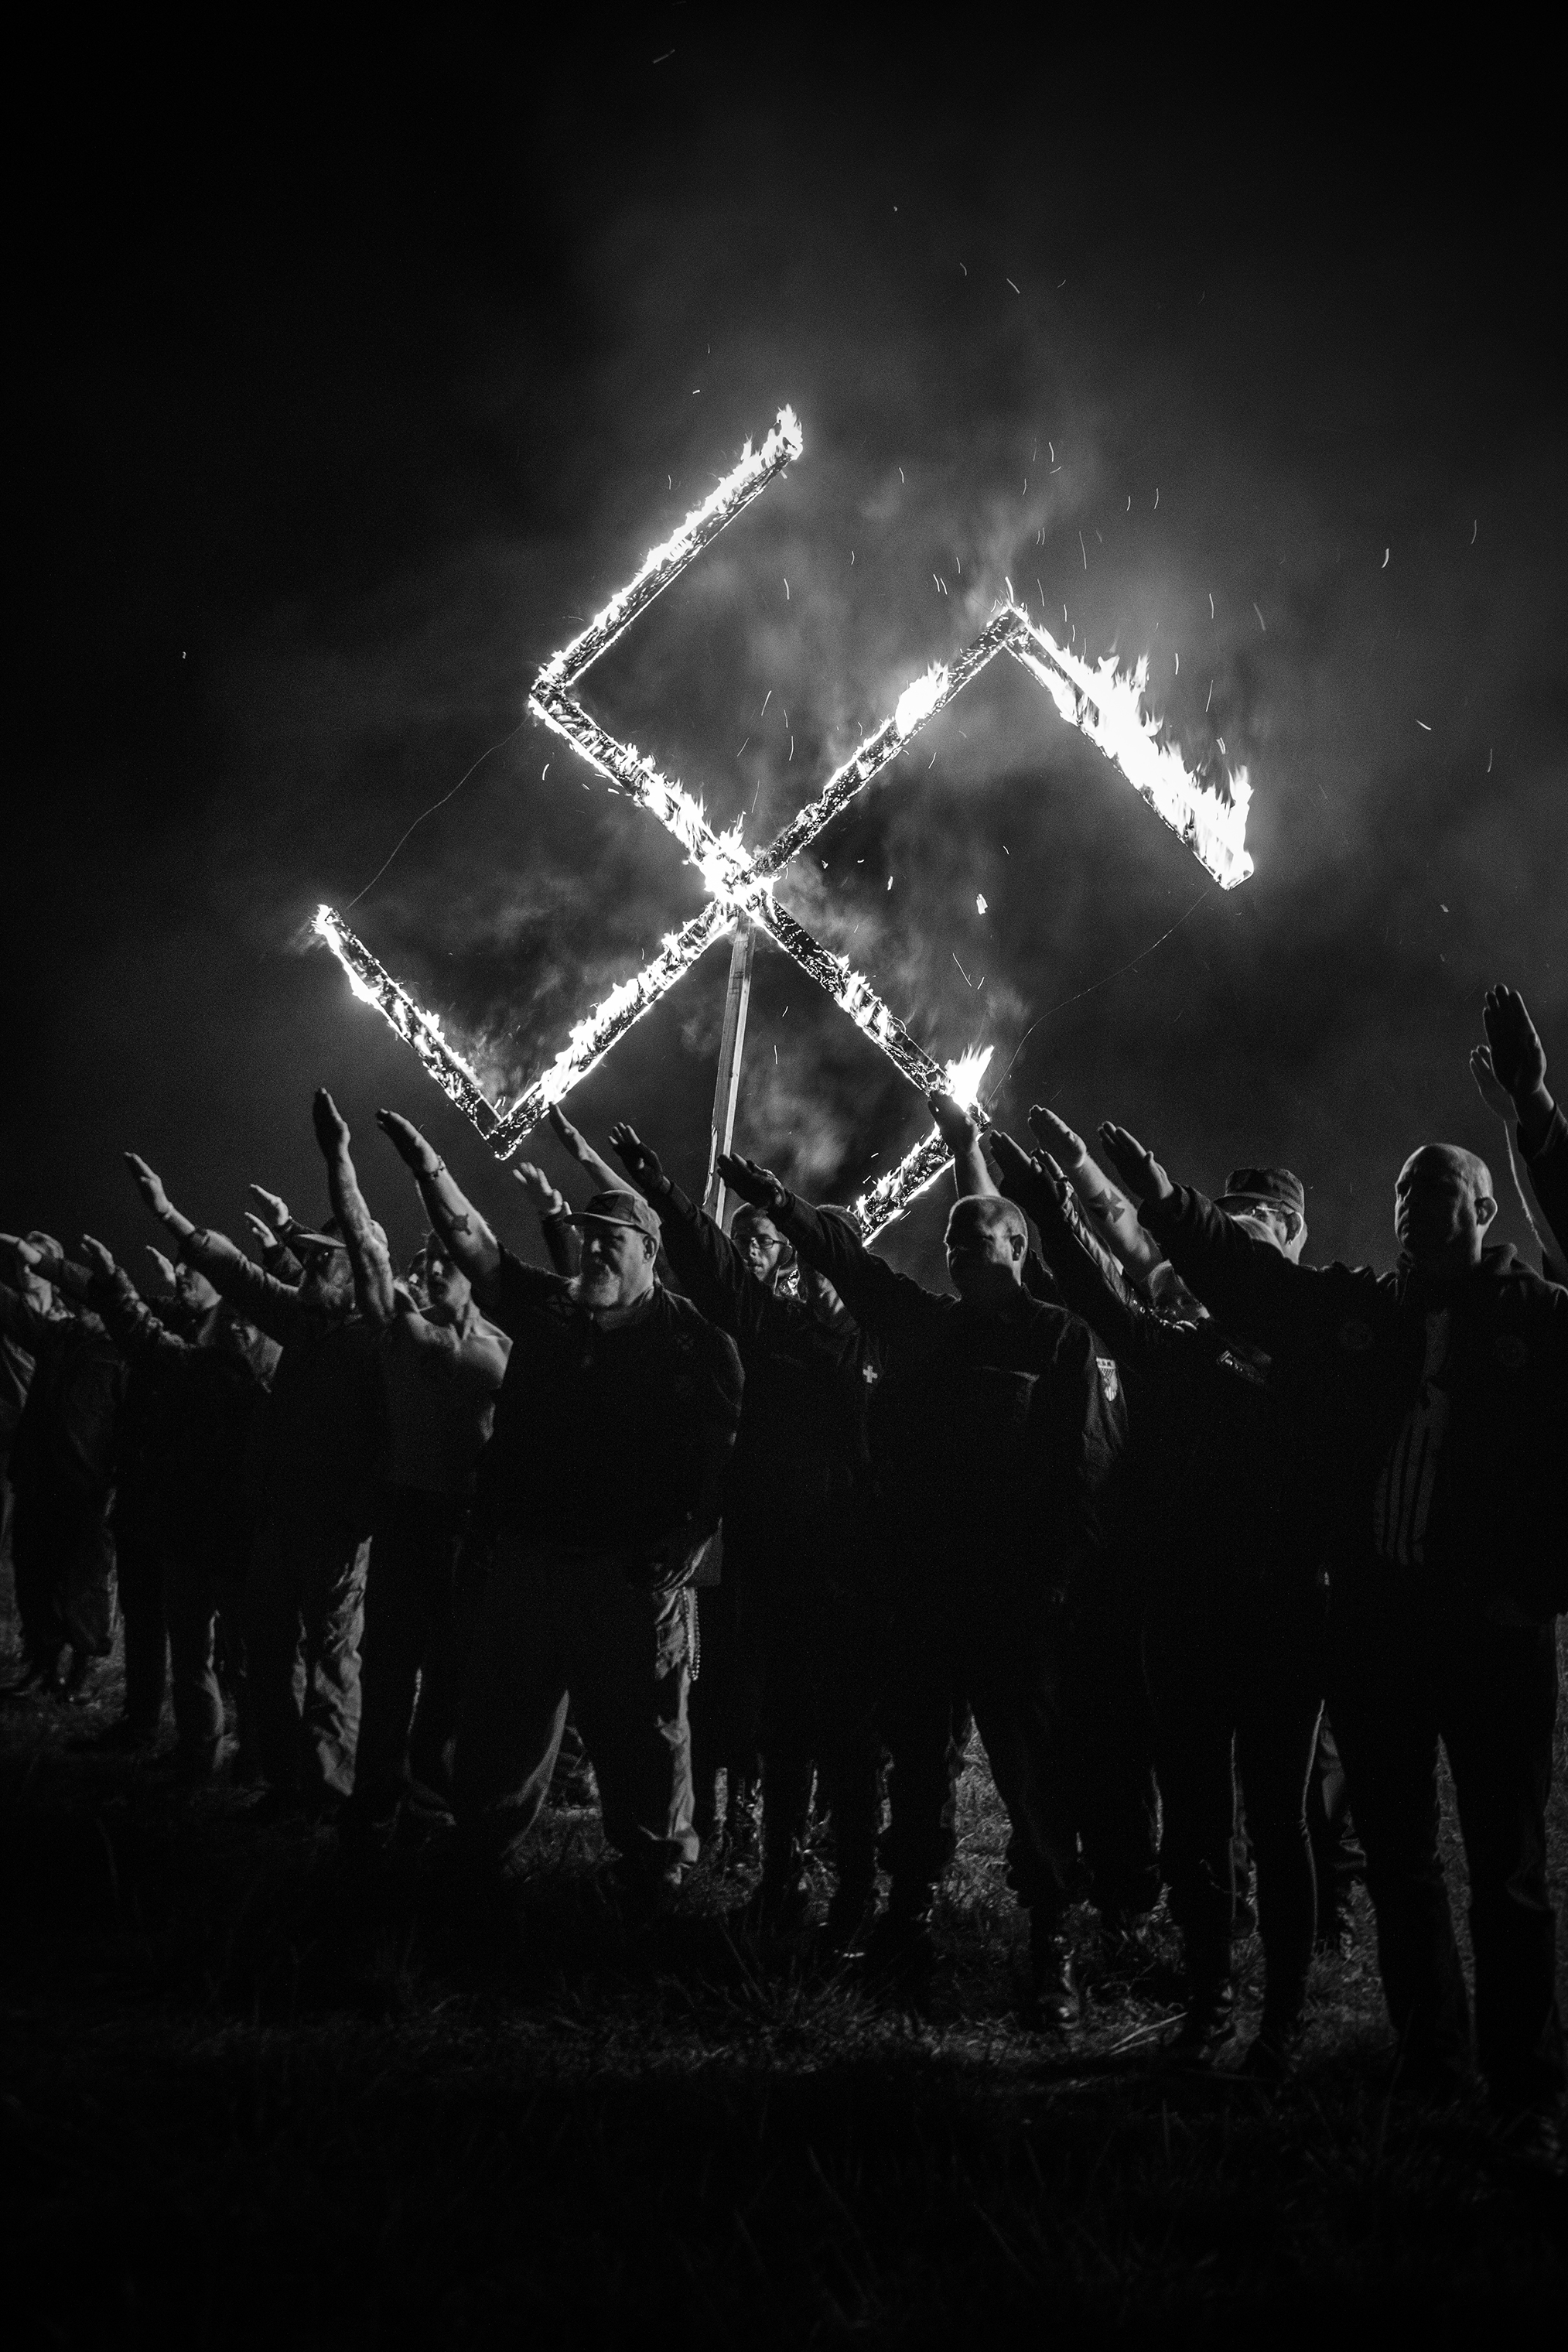 The National Socialist Movement holds a lighting ceremony following a rally that was held in Newnan, Ga., on April 21, 2018.